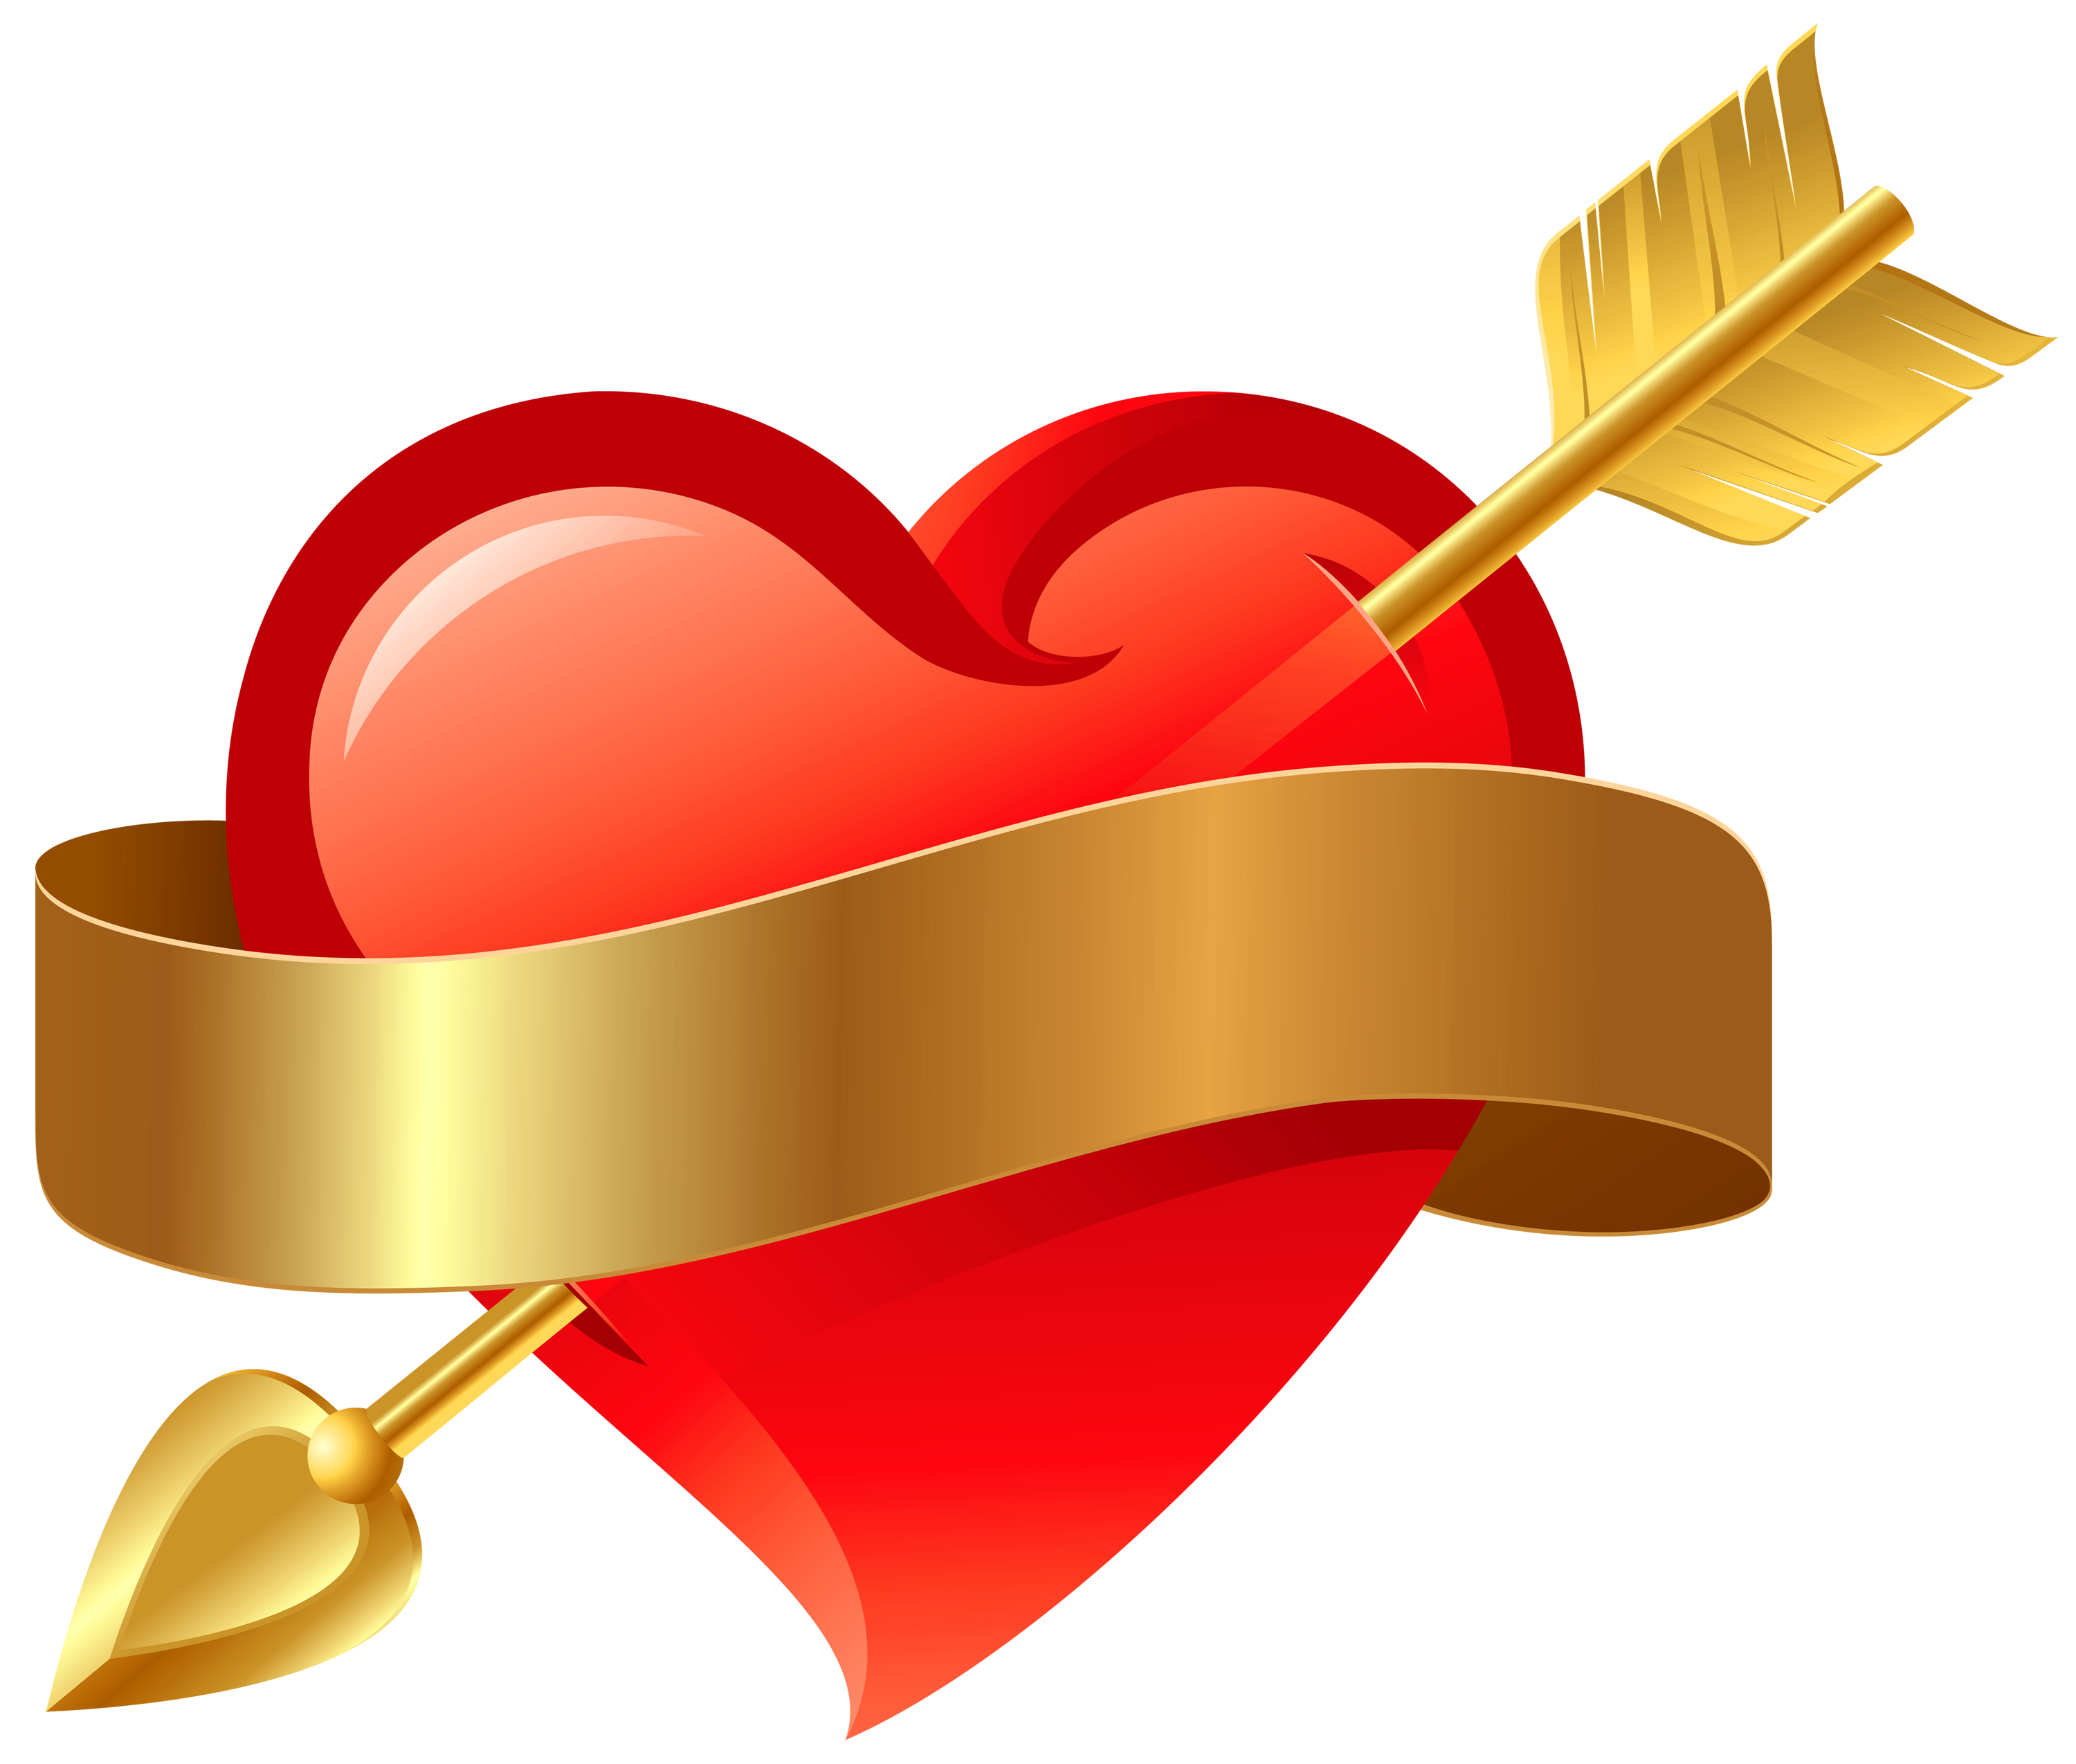 Red with arrow png. Minecraft clipart minecraft heart